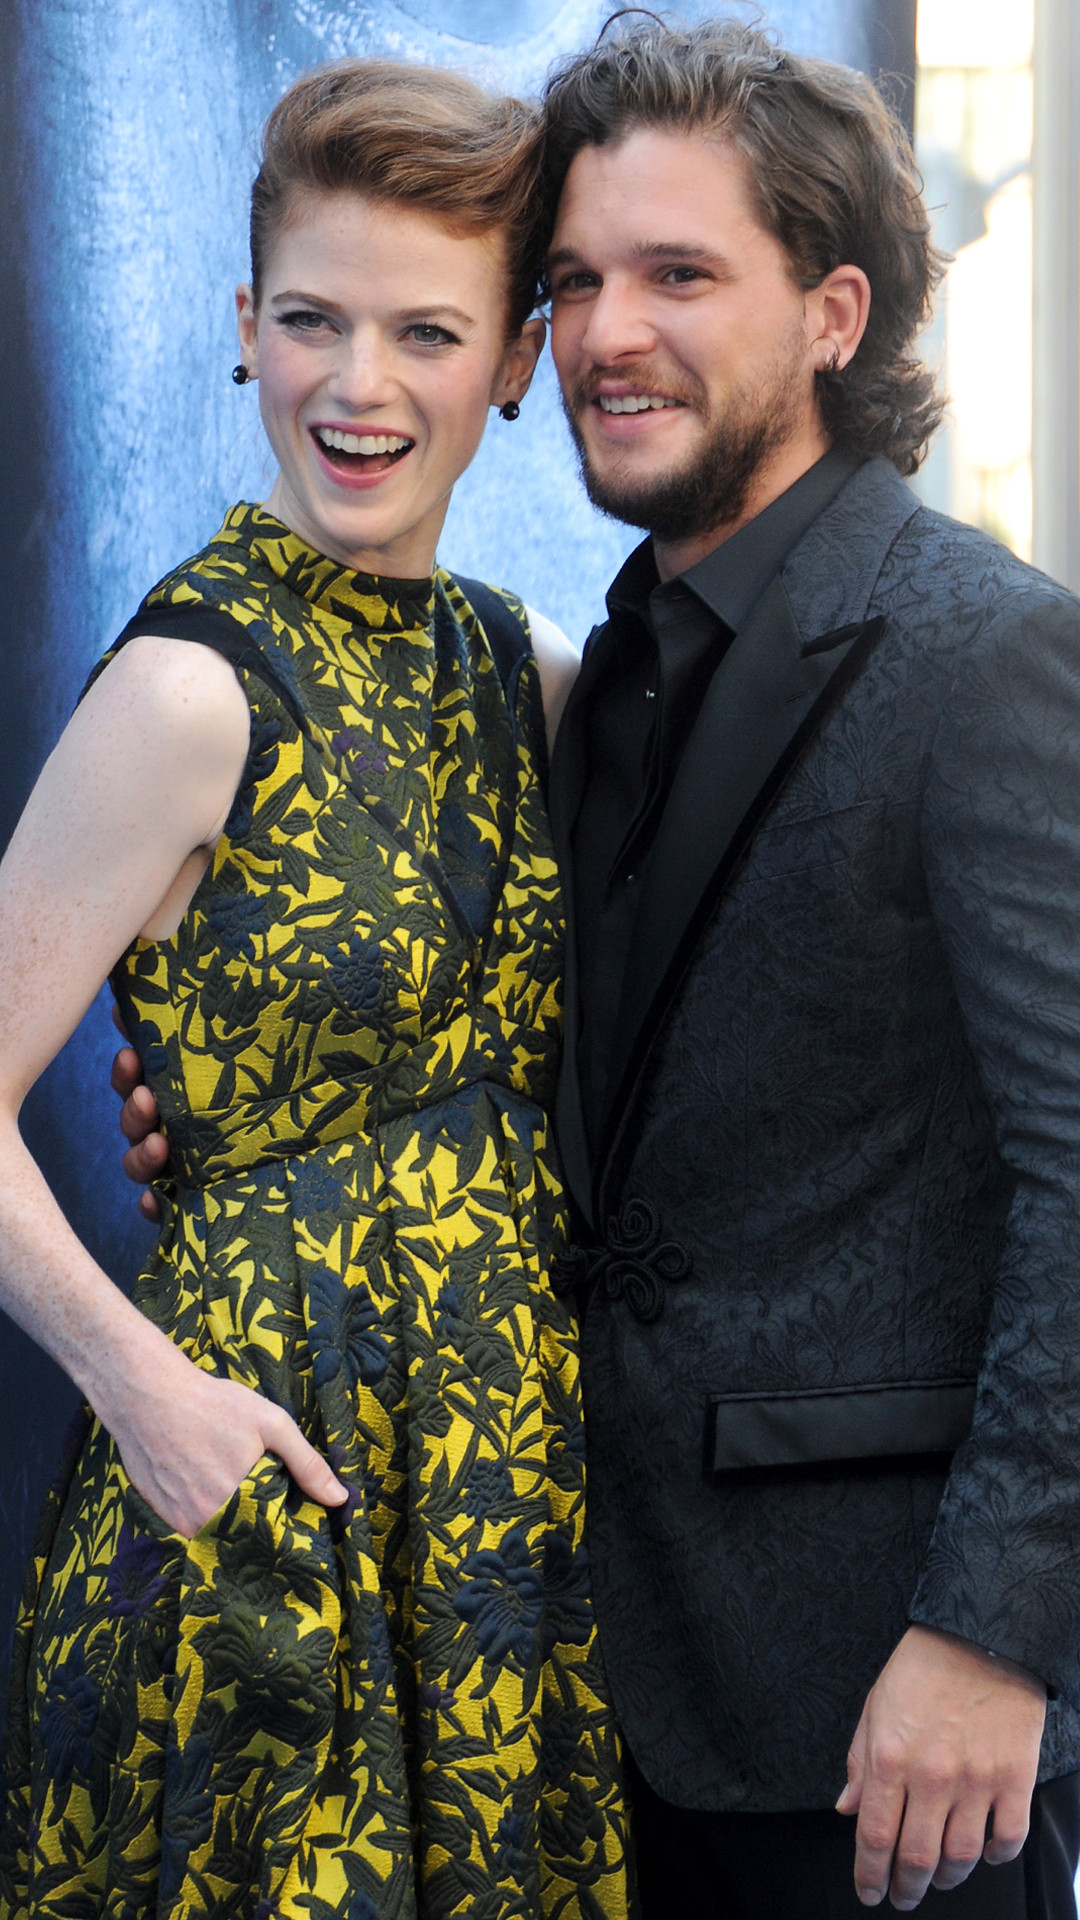 Kit Harington Wedding.Kit Harington And Rose Leslie S Wedding Date Revealed E News